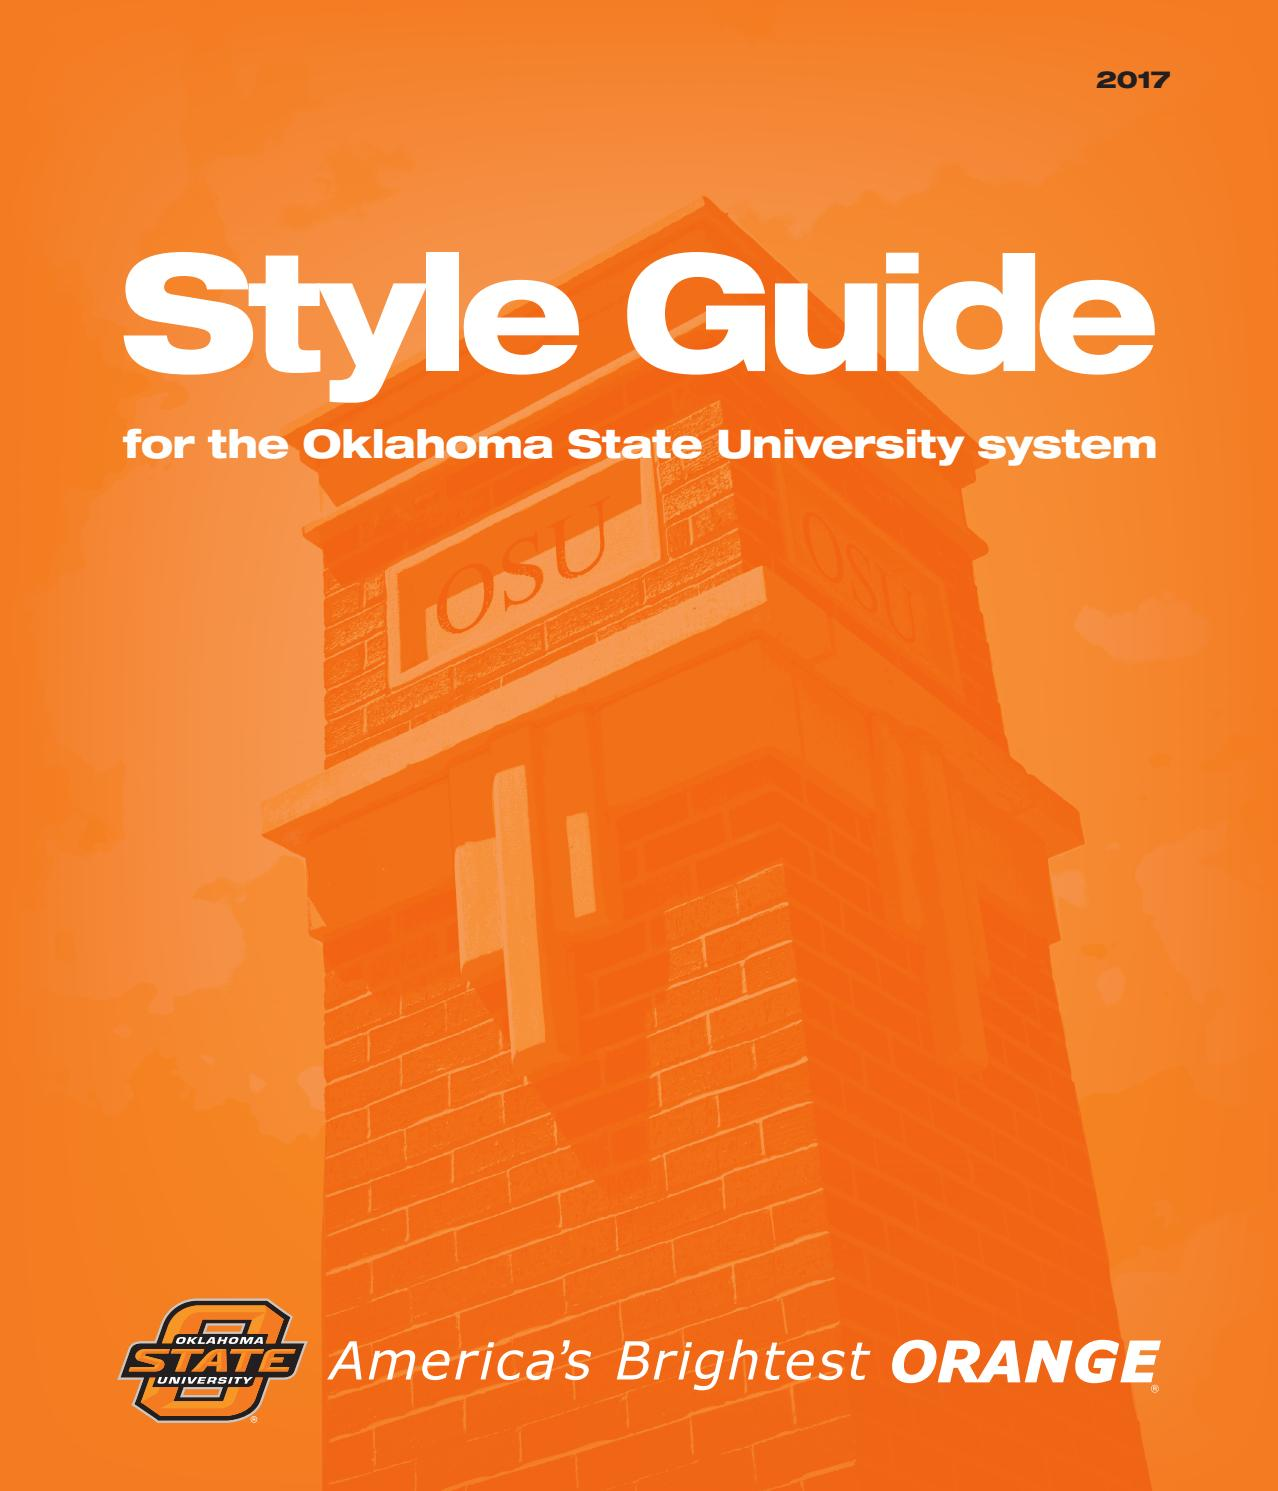 oklahoma state university style guide by oklahoma state issuu